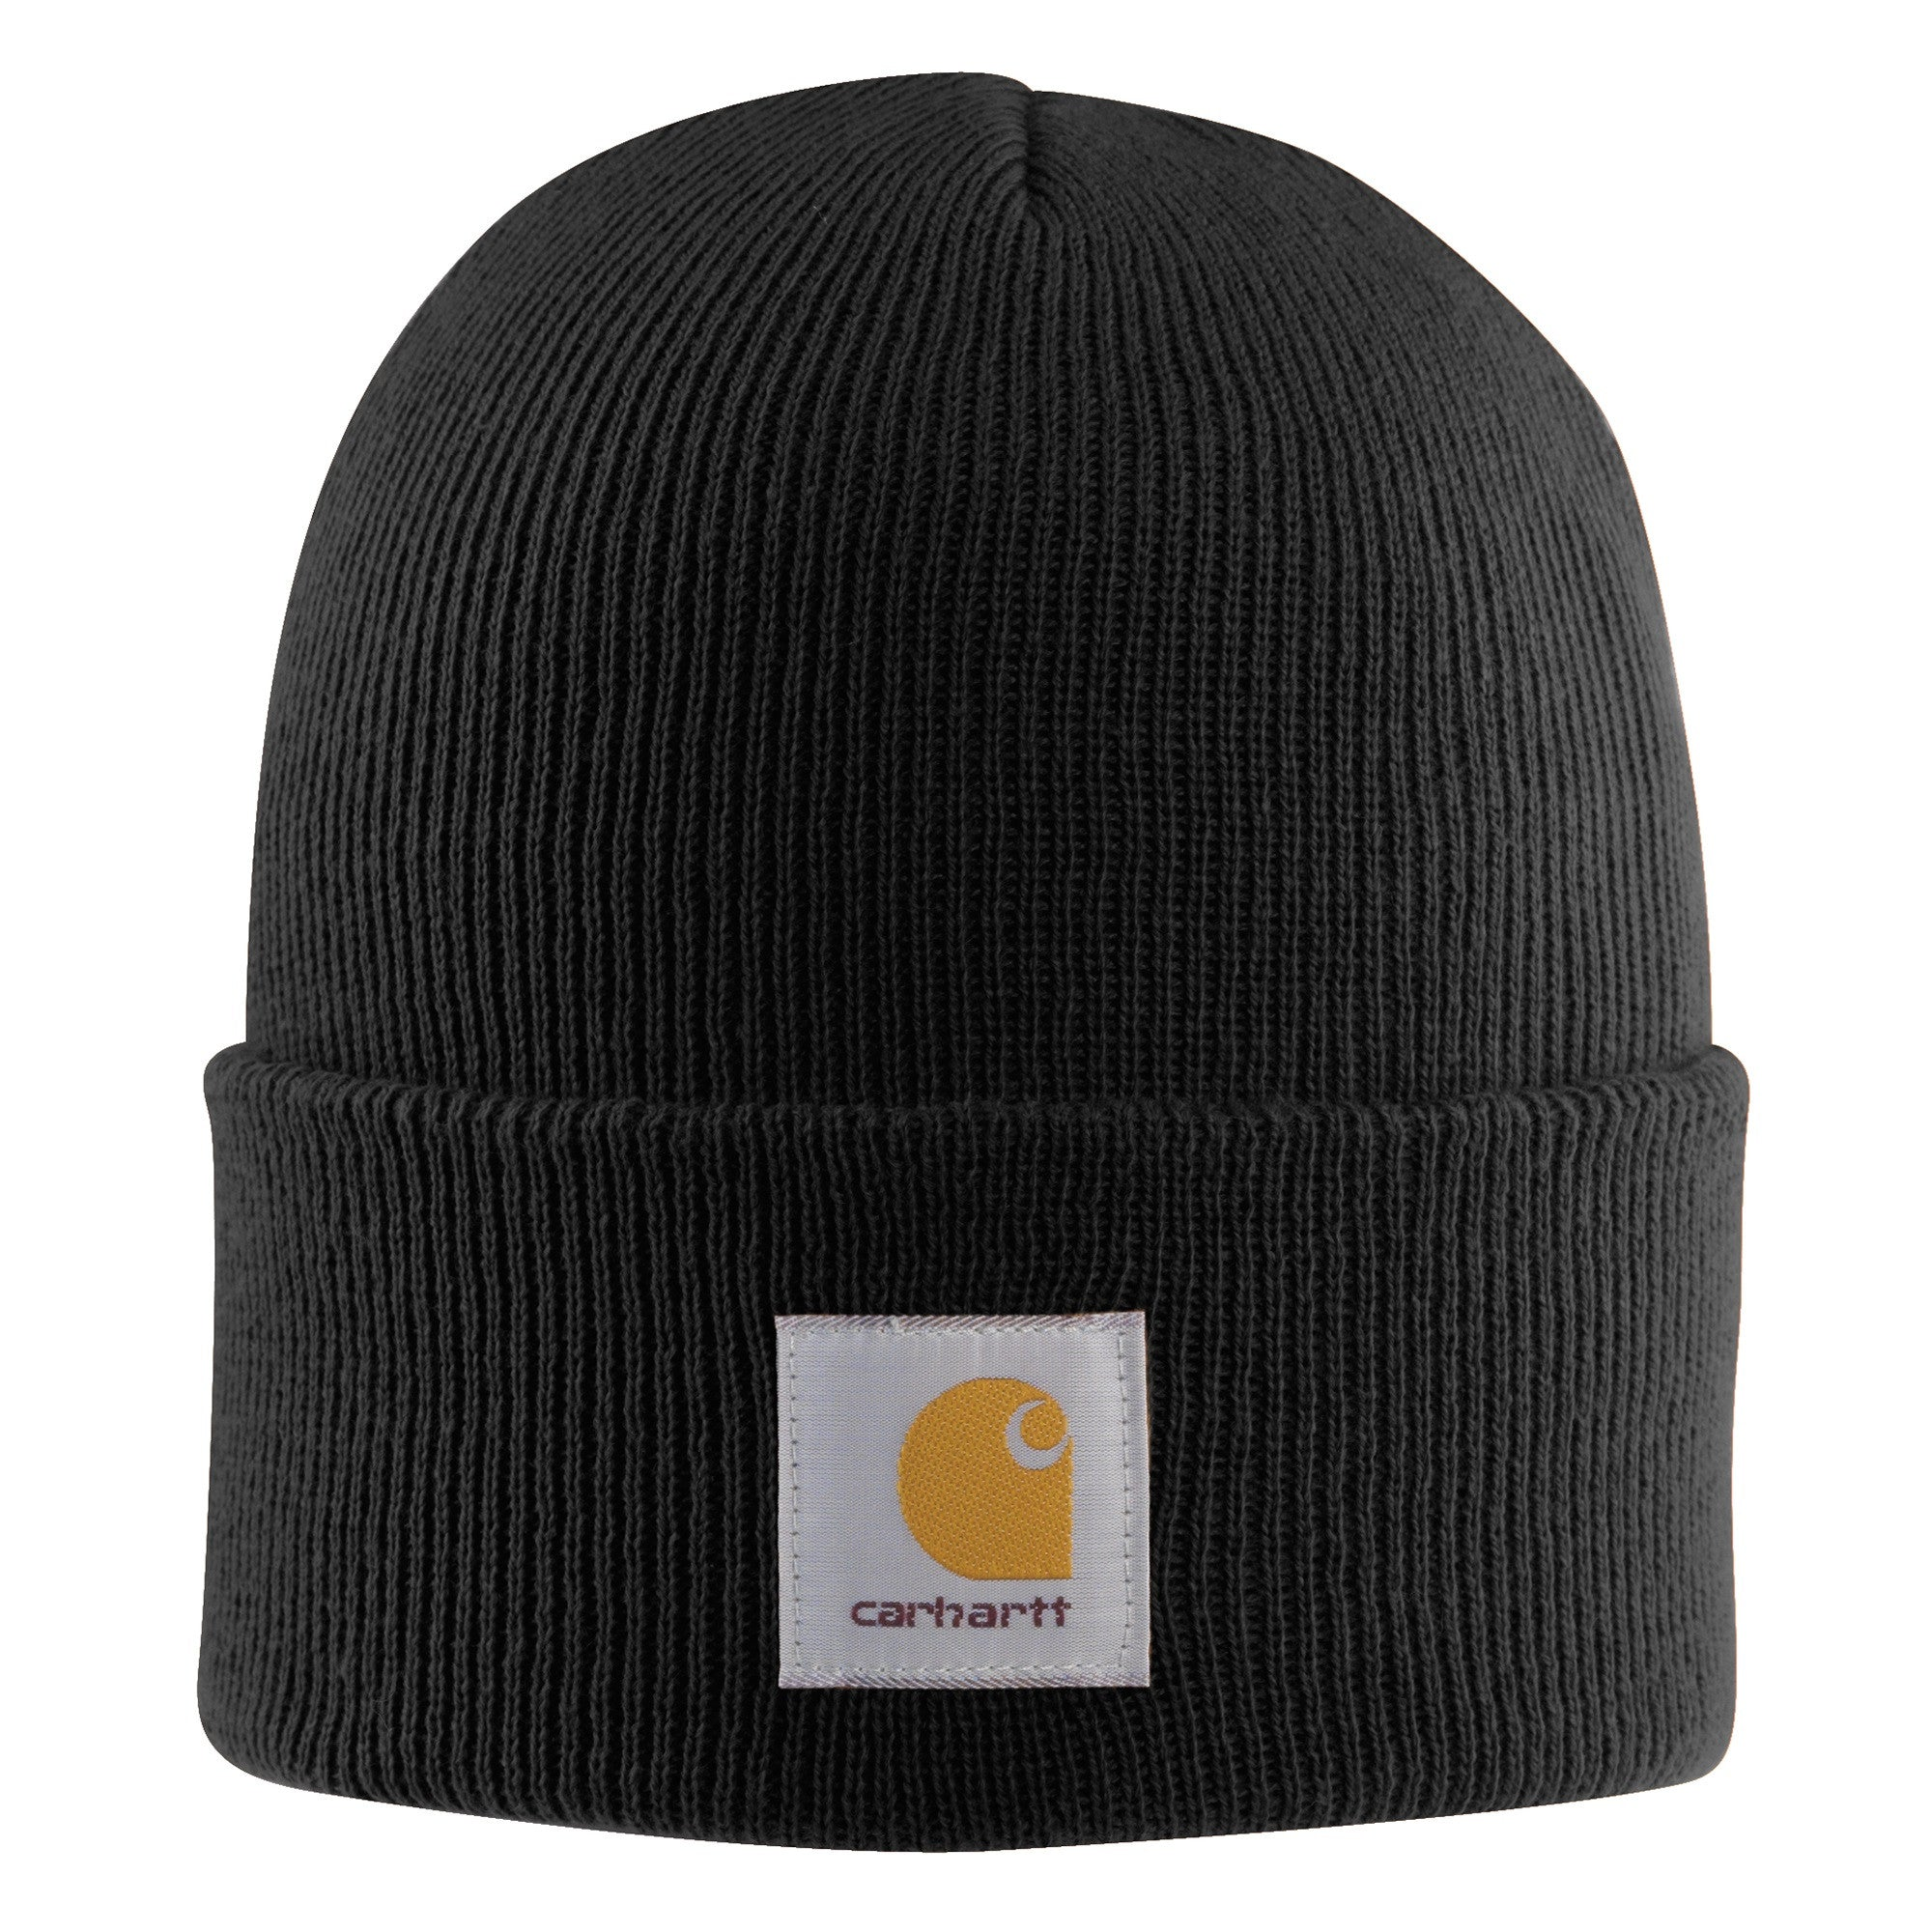 3d01e2b6dab Carhartt A18 Acrylic Watch Hat Black